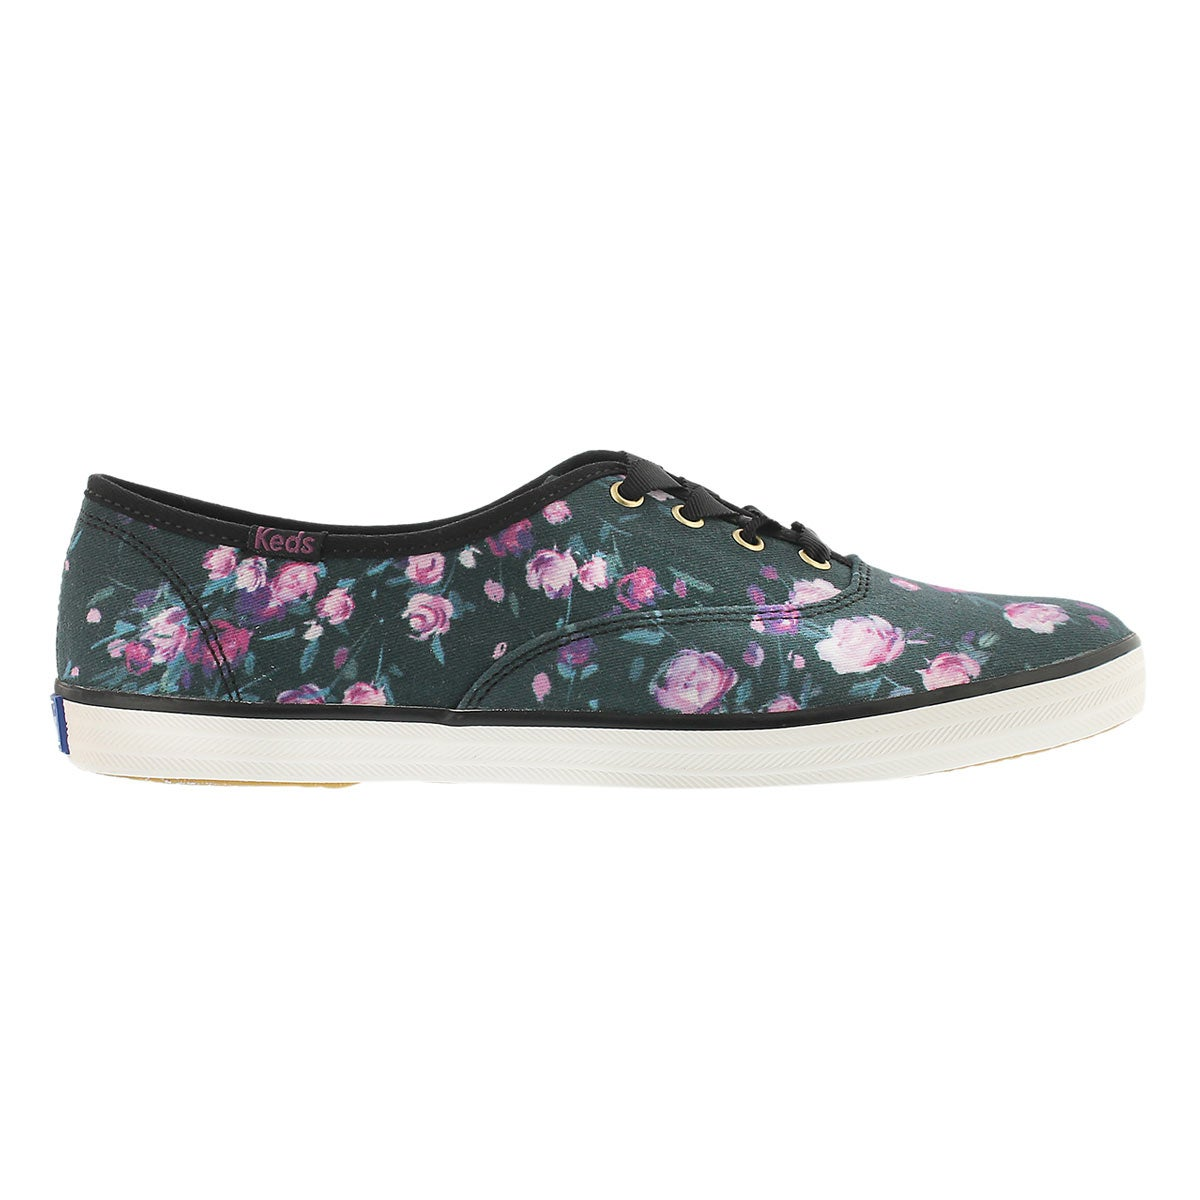 Lds Frost Floral black printed sneaker